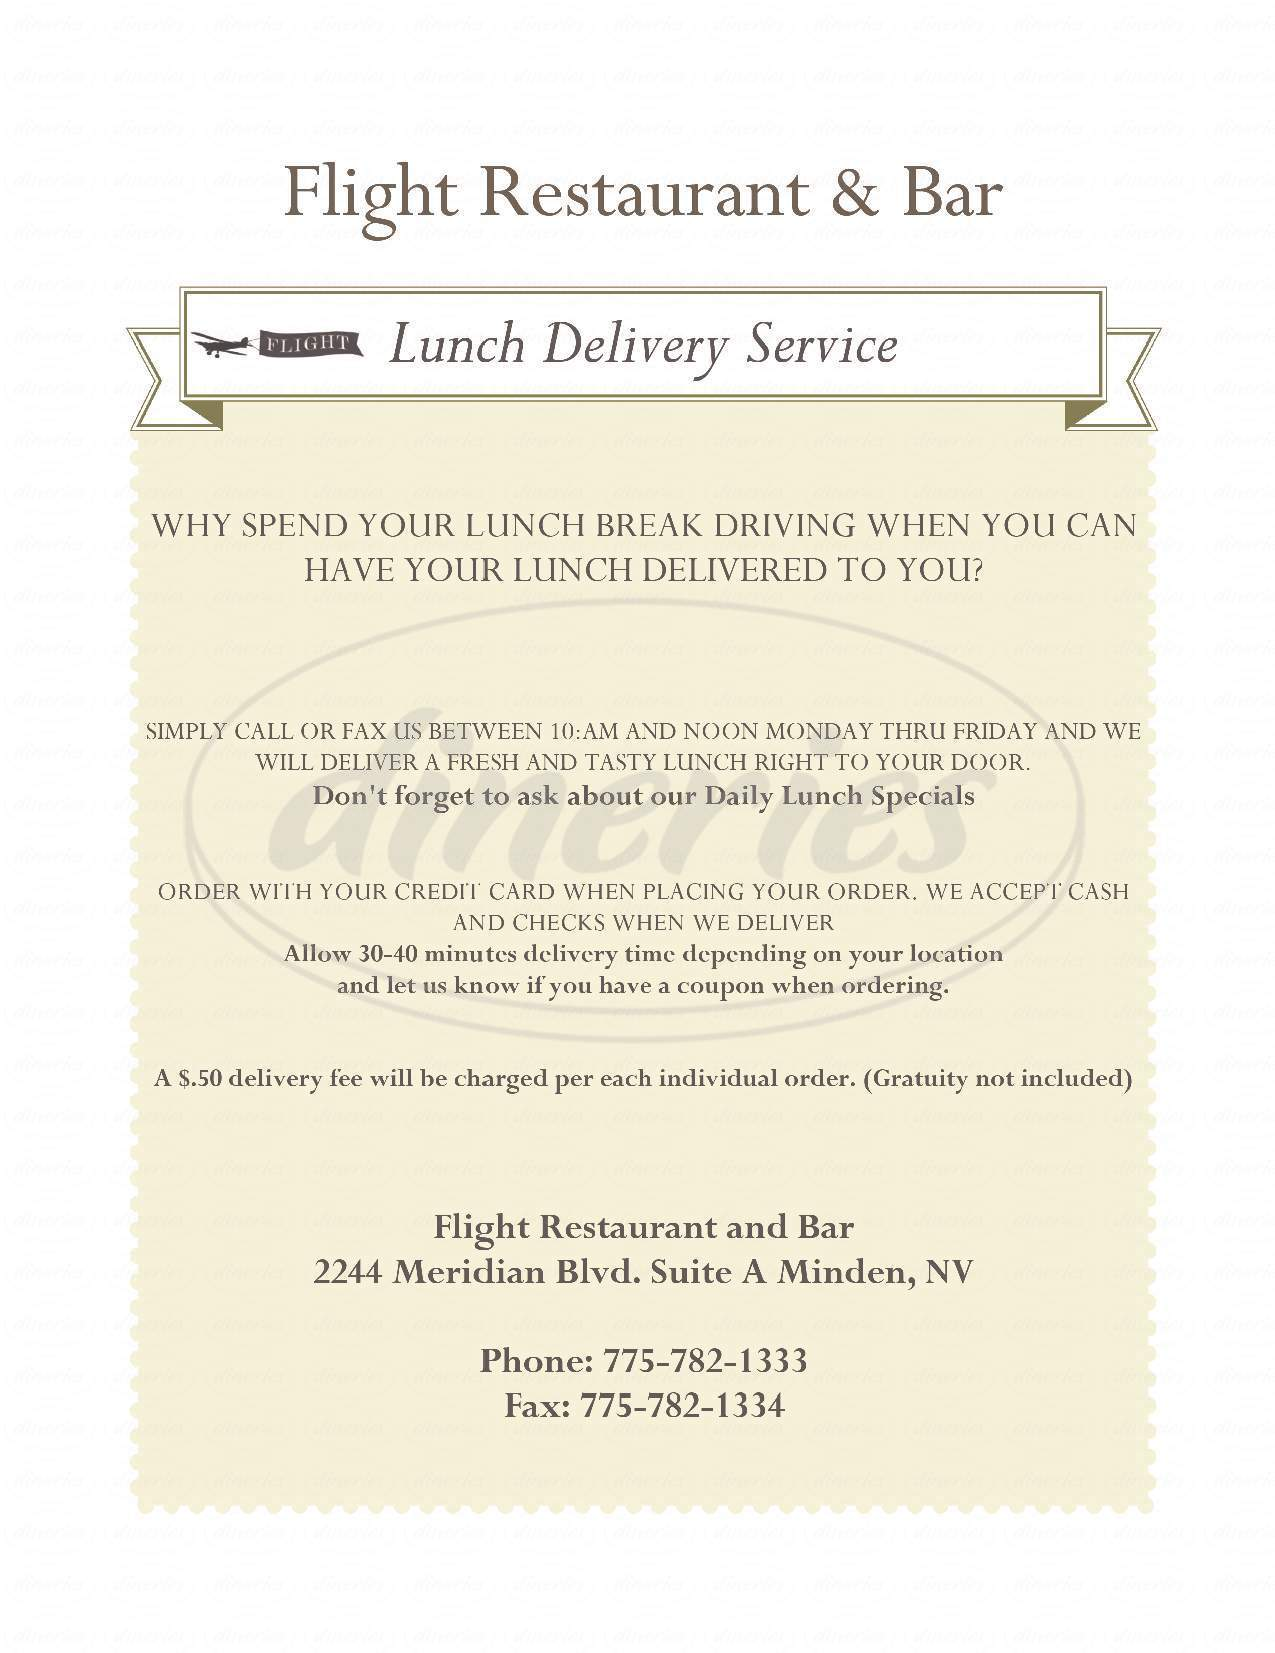 menu for Flight Restaurant and Bar